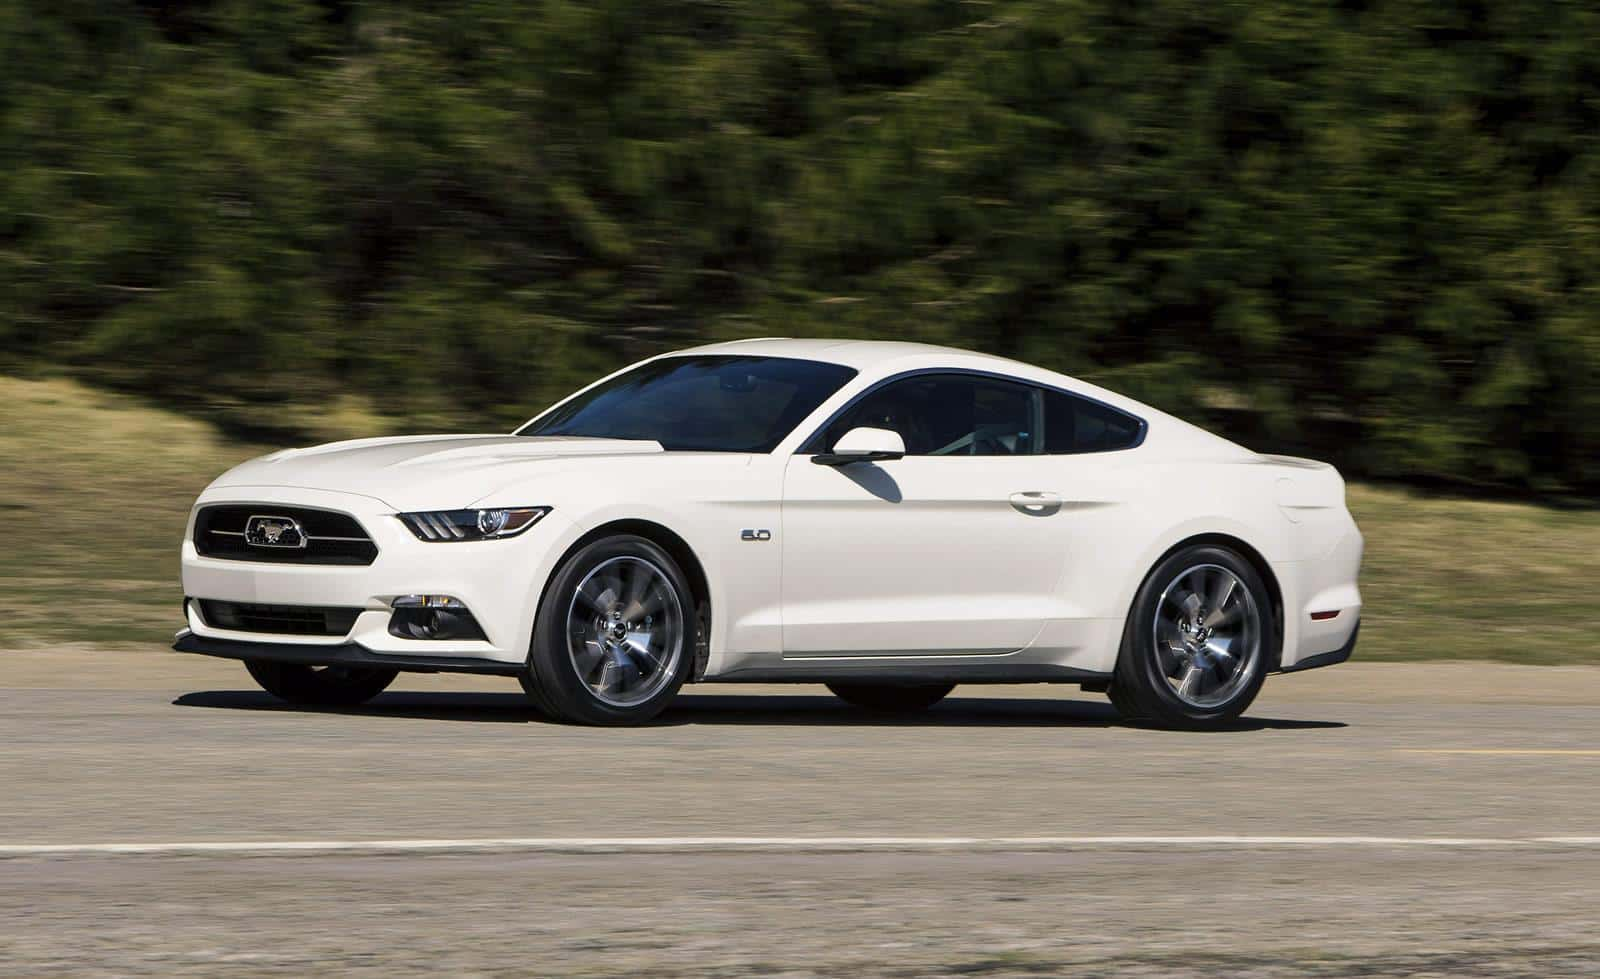 The Ford Mustang 50th Anniversary Limited Edition